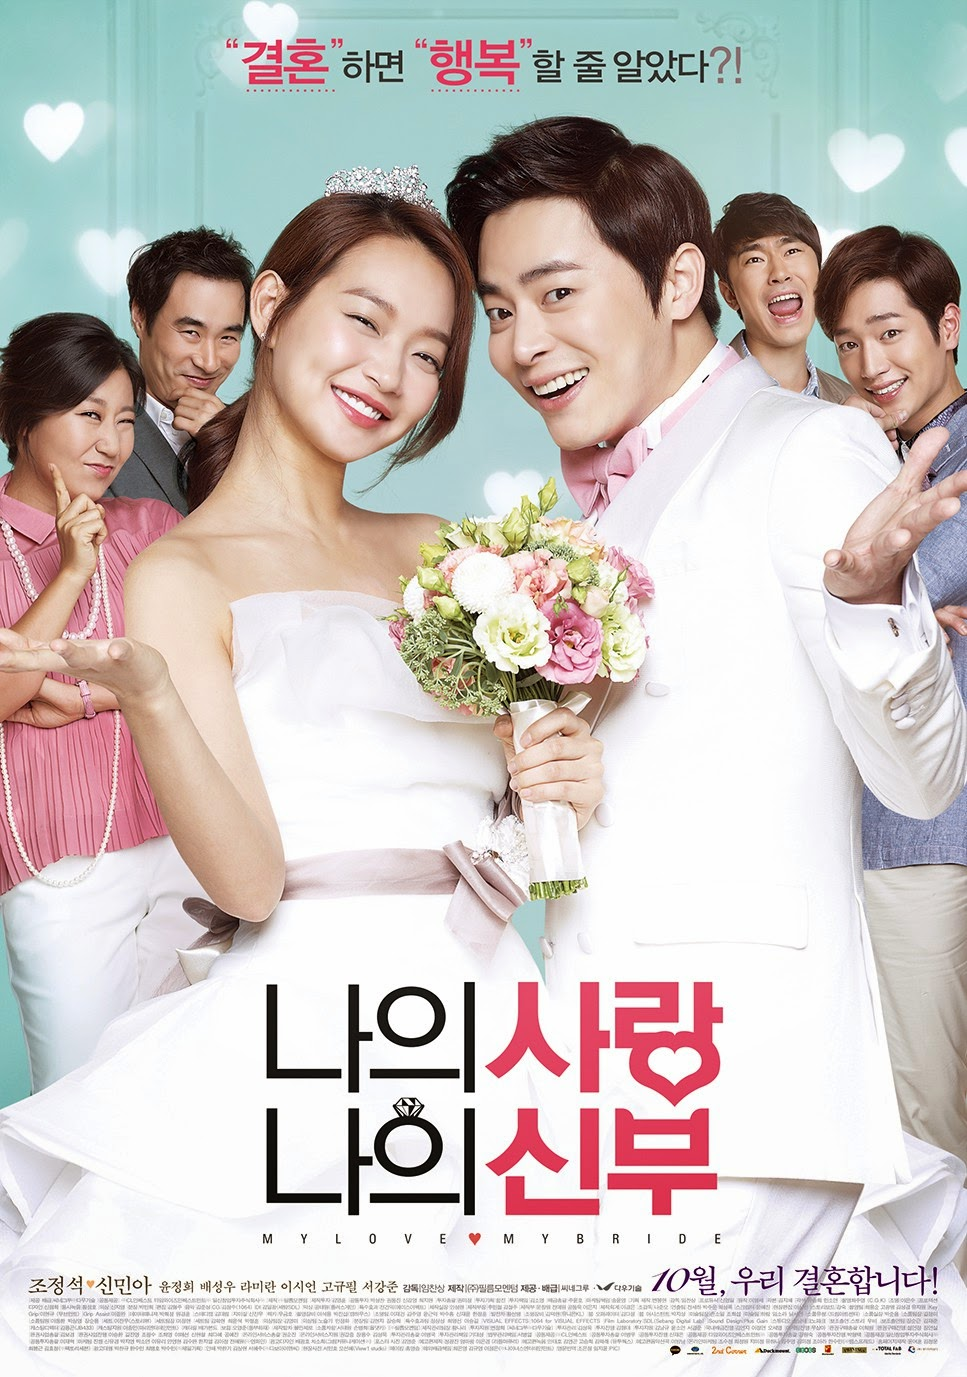 Asian Movies, Music & TV Dramas: Movie review - My Love, My Bride